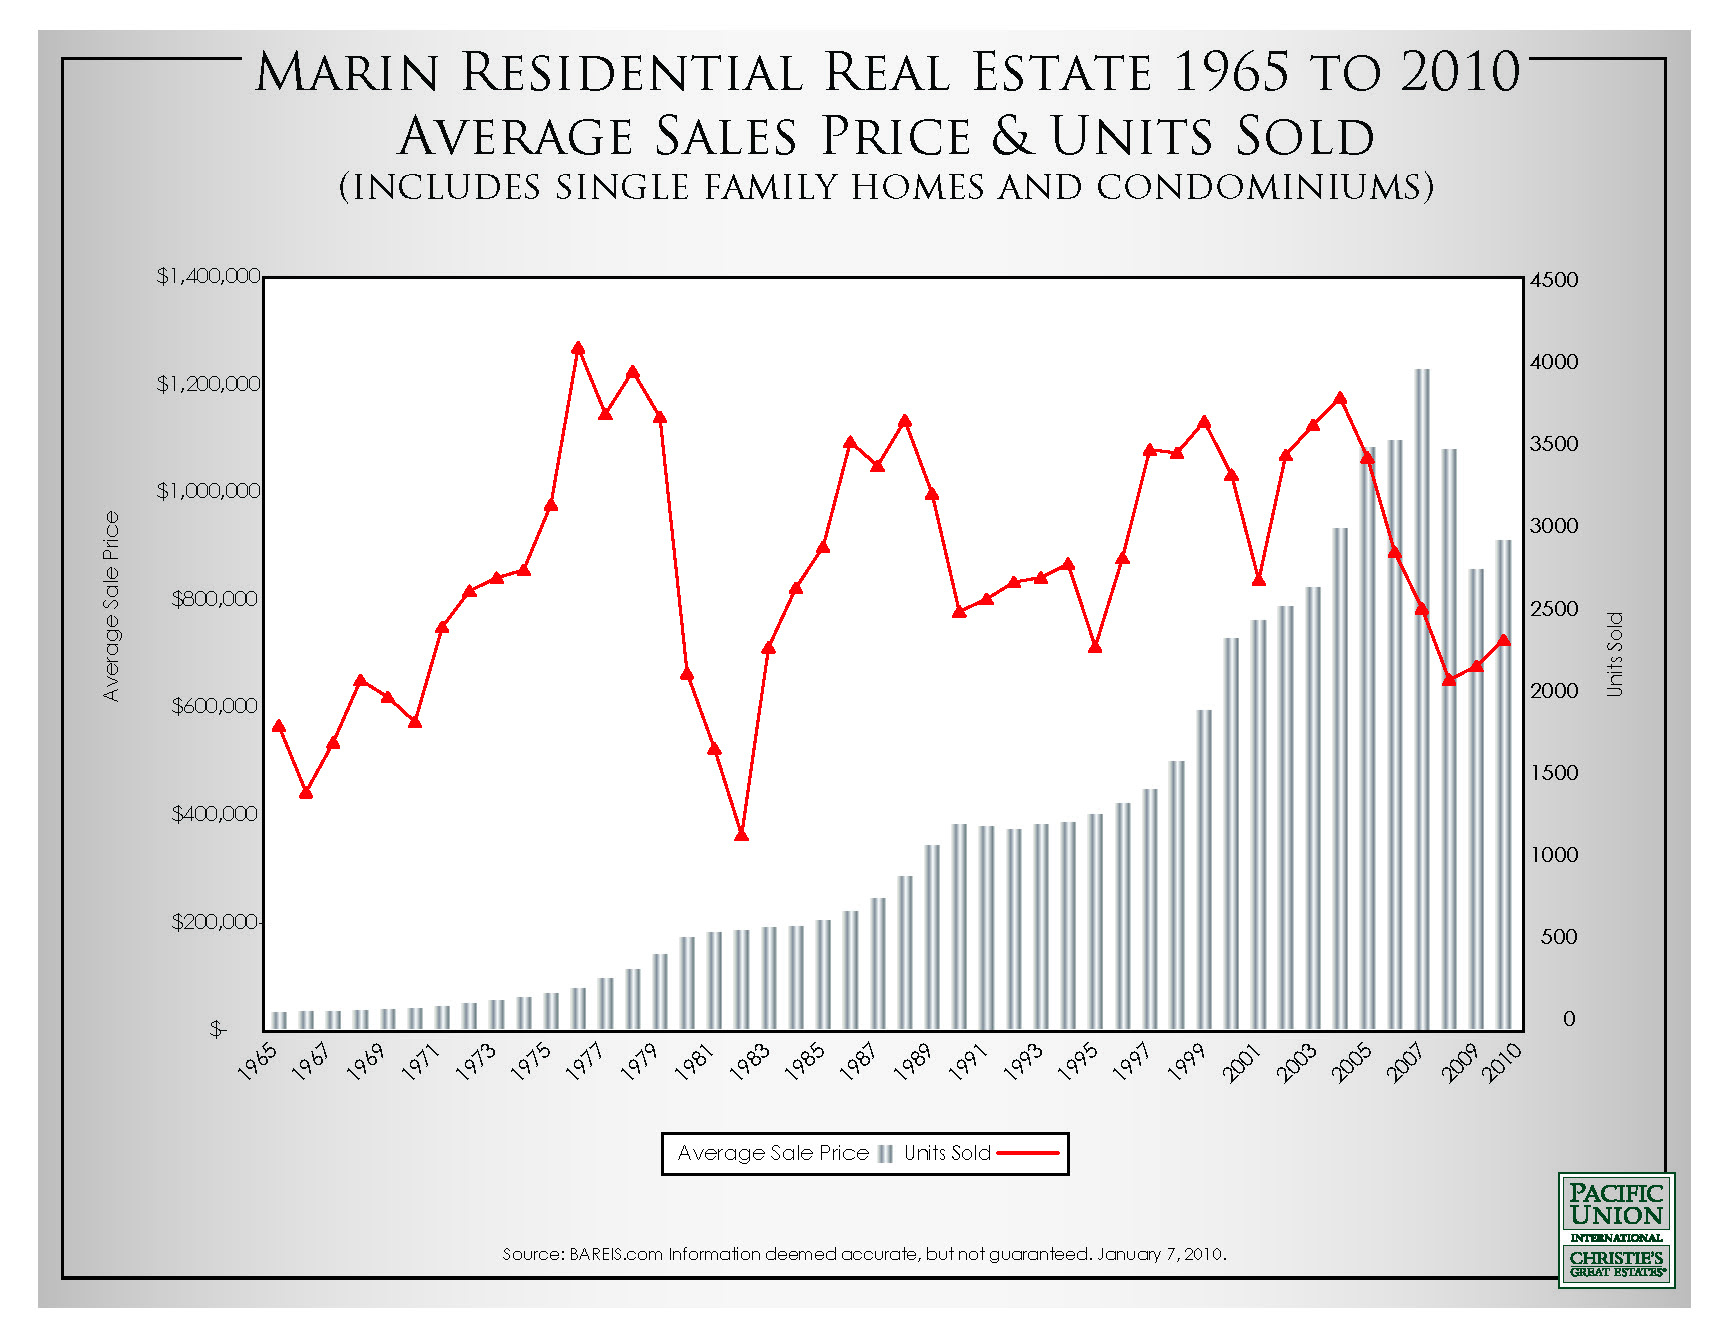 Marin Residential Real Estate Sales 1965-2010